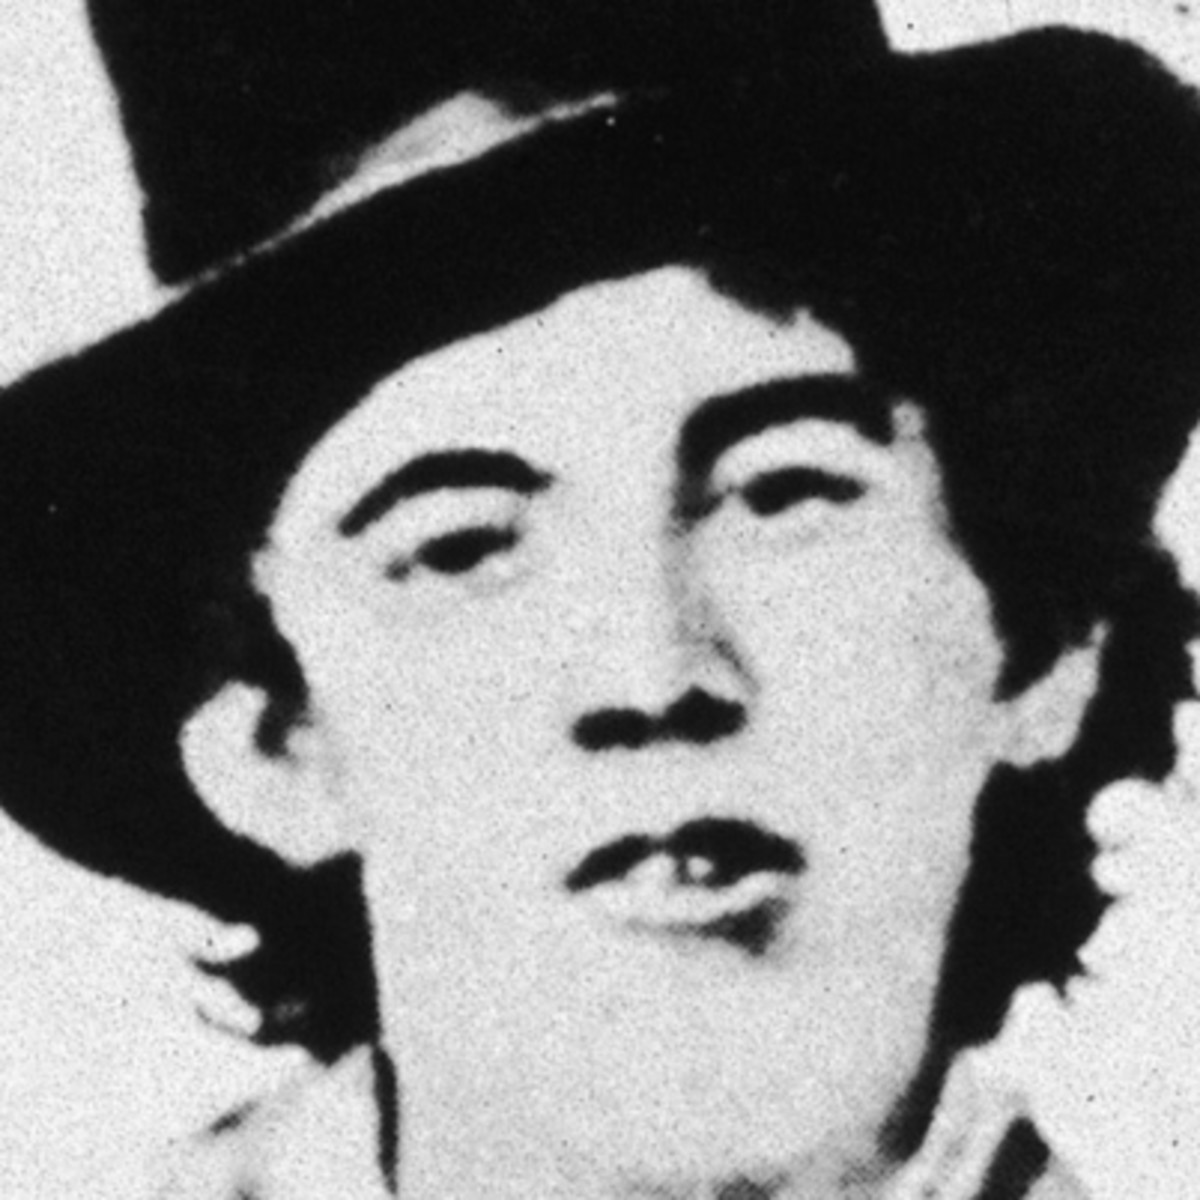 an introduction to the life of henry mccarty aka william h bonney aka billy the kid For his mother and william bonney or patrick henry mccarty for  william h bonney, alias billy the kid,  called the authentic life of billy, the kid.